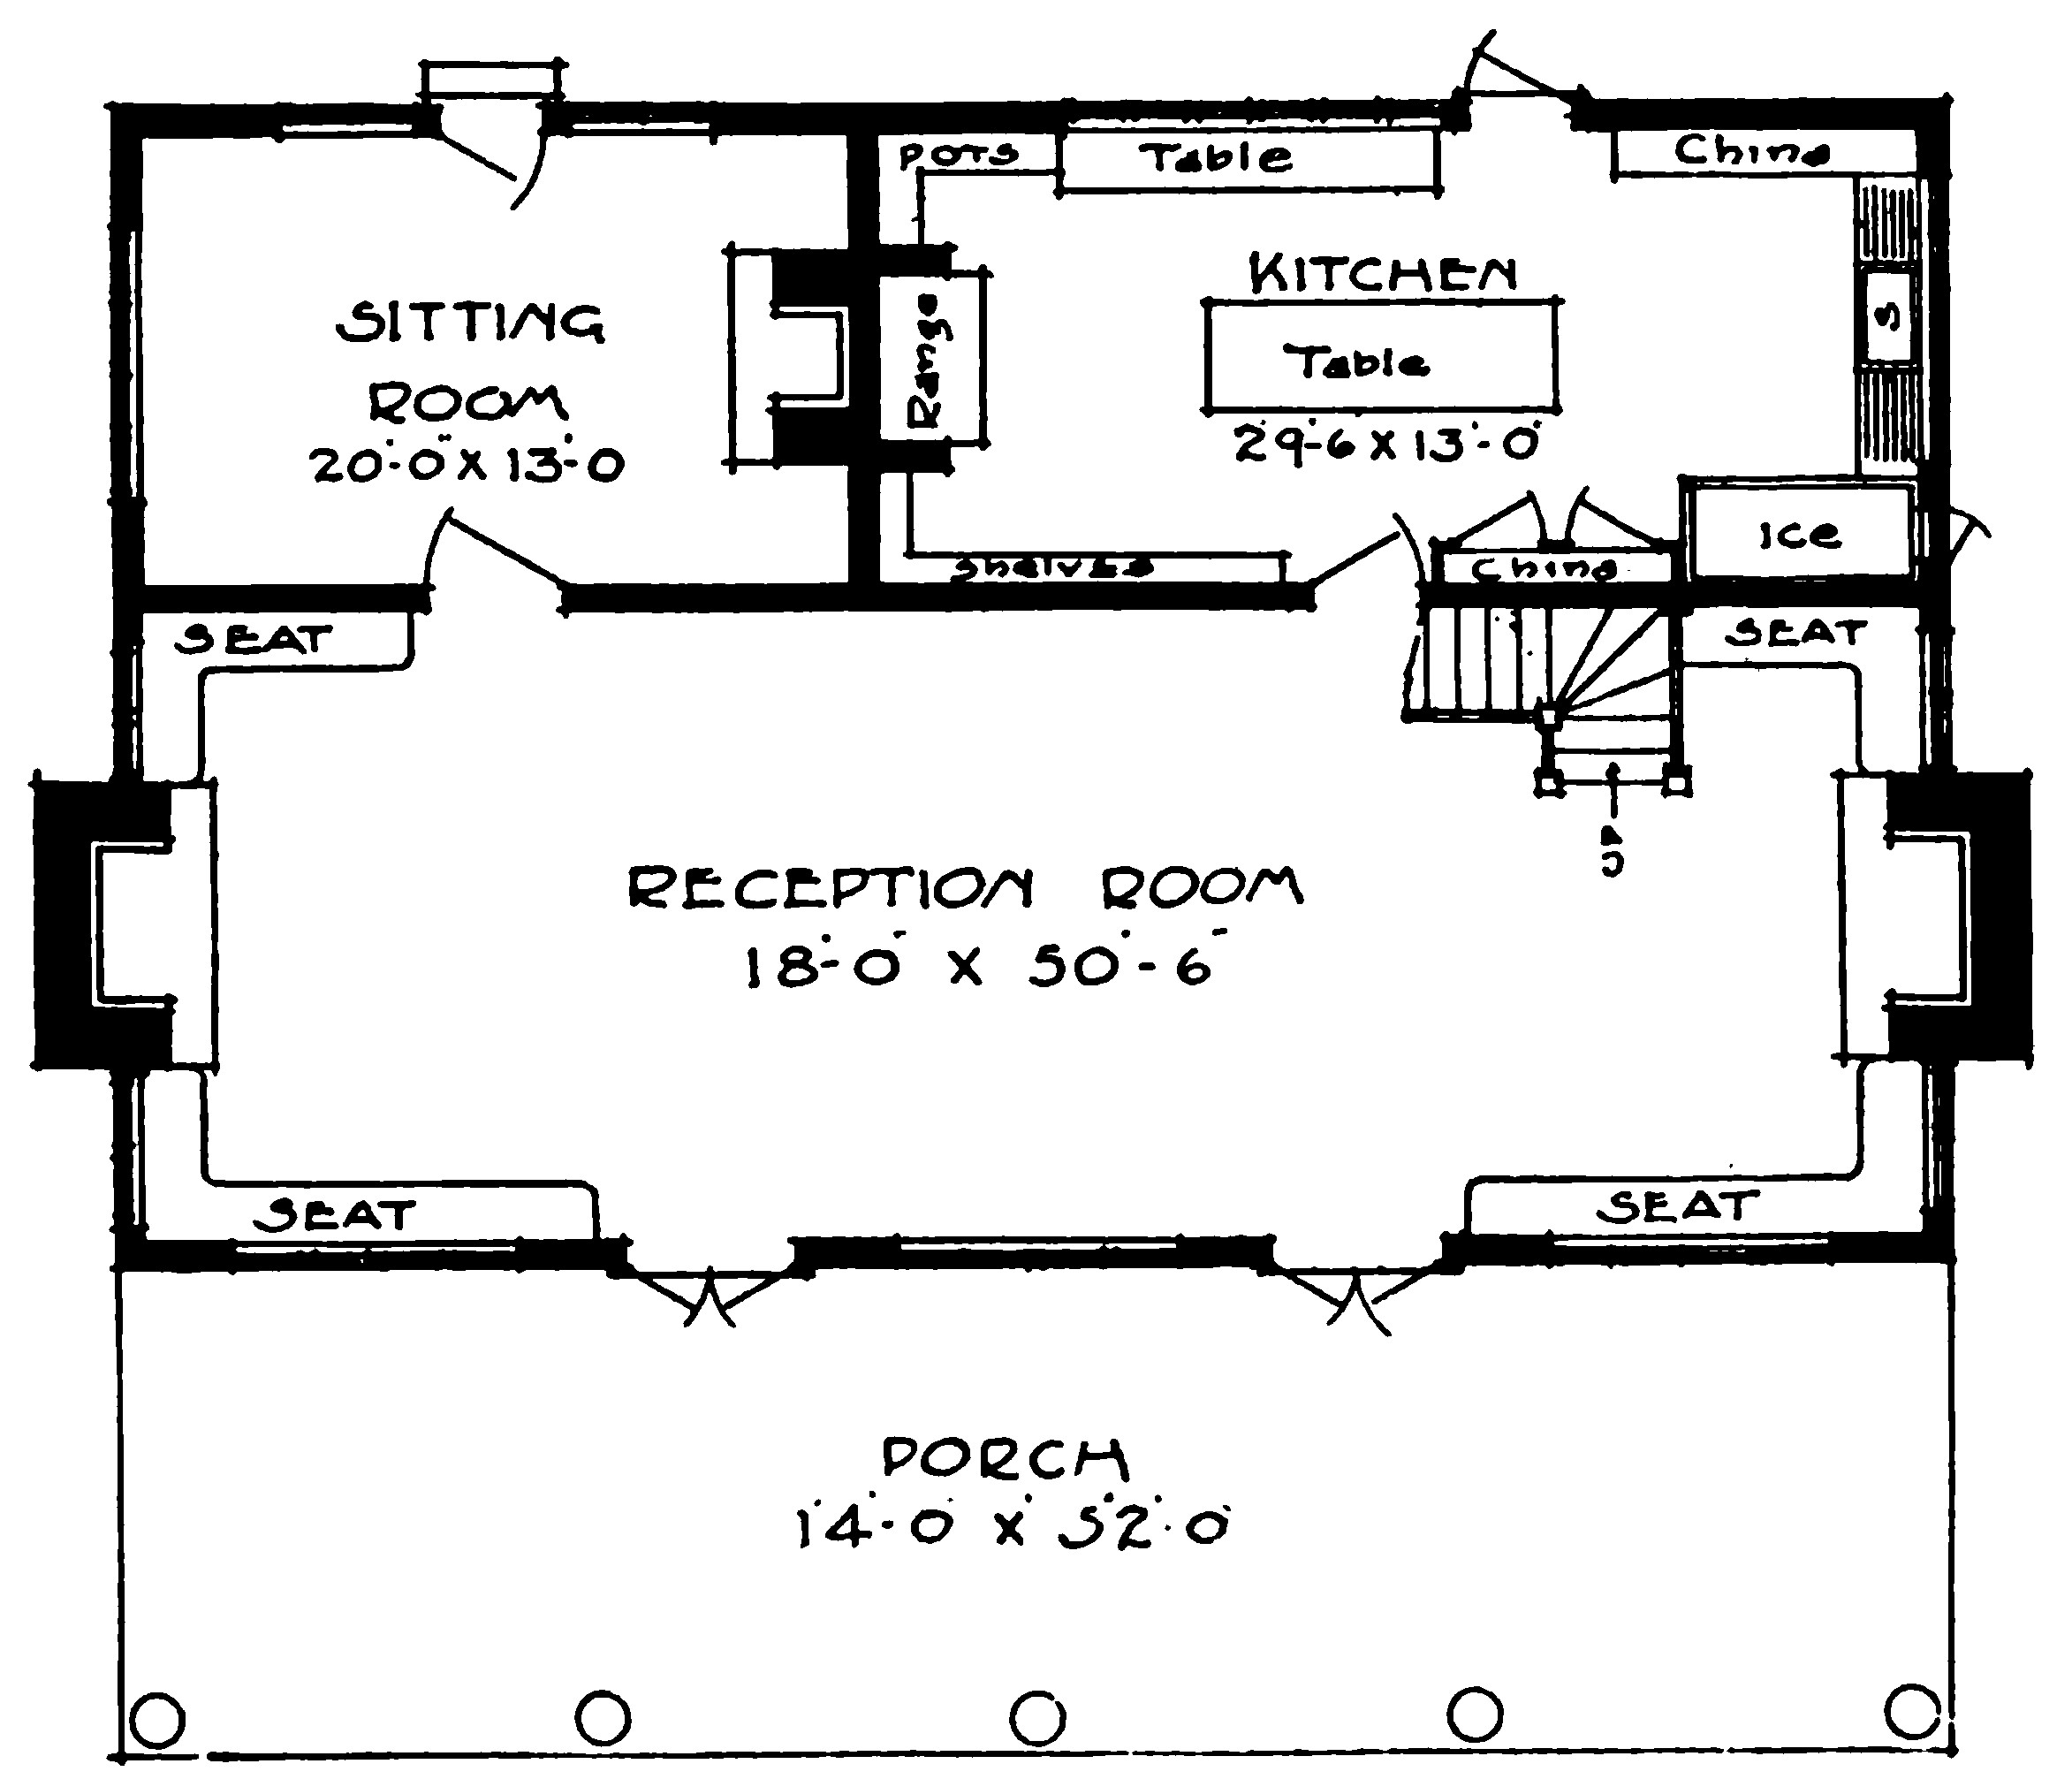 Skowhegan House pages: We Delve into the History of the House on game room blueprints, balcony blueprints, garbage disposal blueprints, gate blueprints, basketball court blueprints, bbq blueprints, futurama blueprints, large bedroom blueprints, prison break blueprints, the shield blueprints, fitness blueprints, supernatural blueprints, marina blueprints,